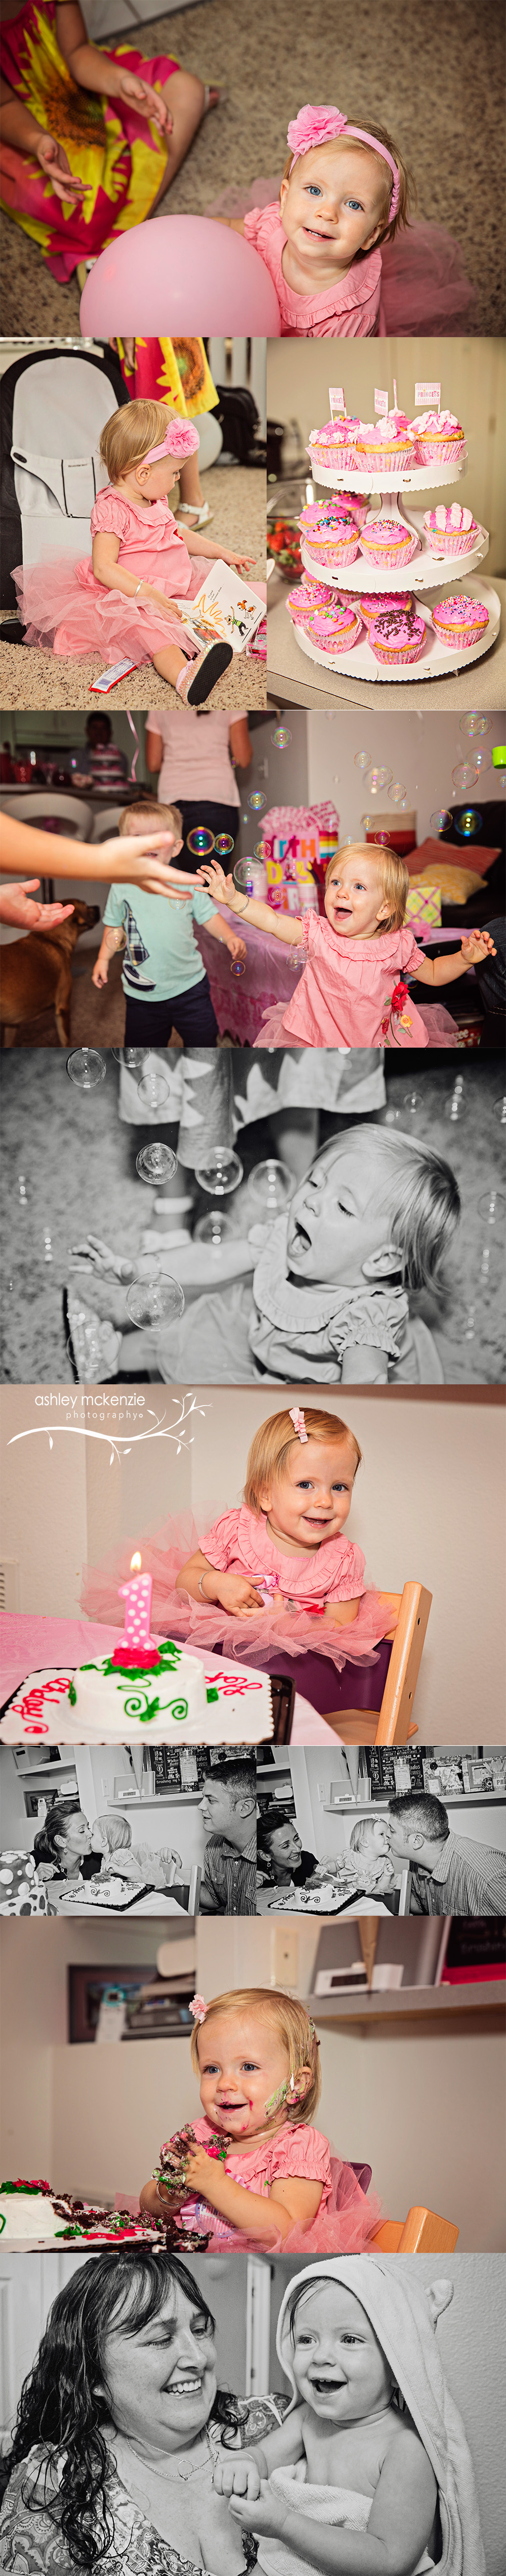 Cake Smash Baby Photography by Ashley McKenzie Photography in Longmont, CO